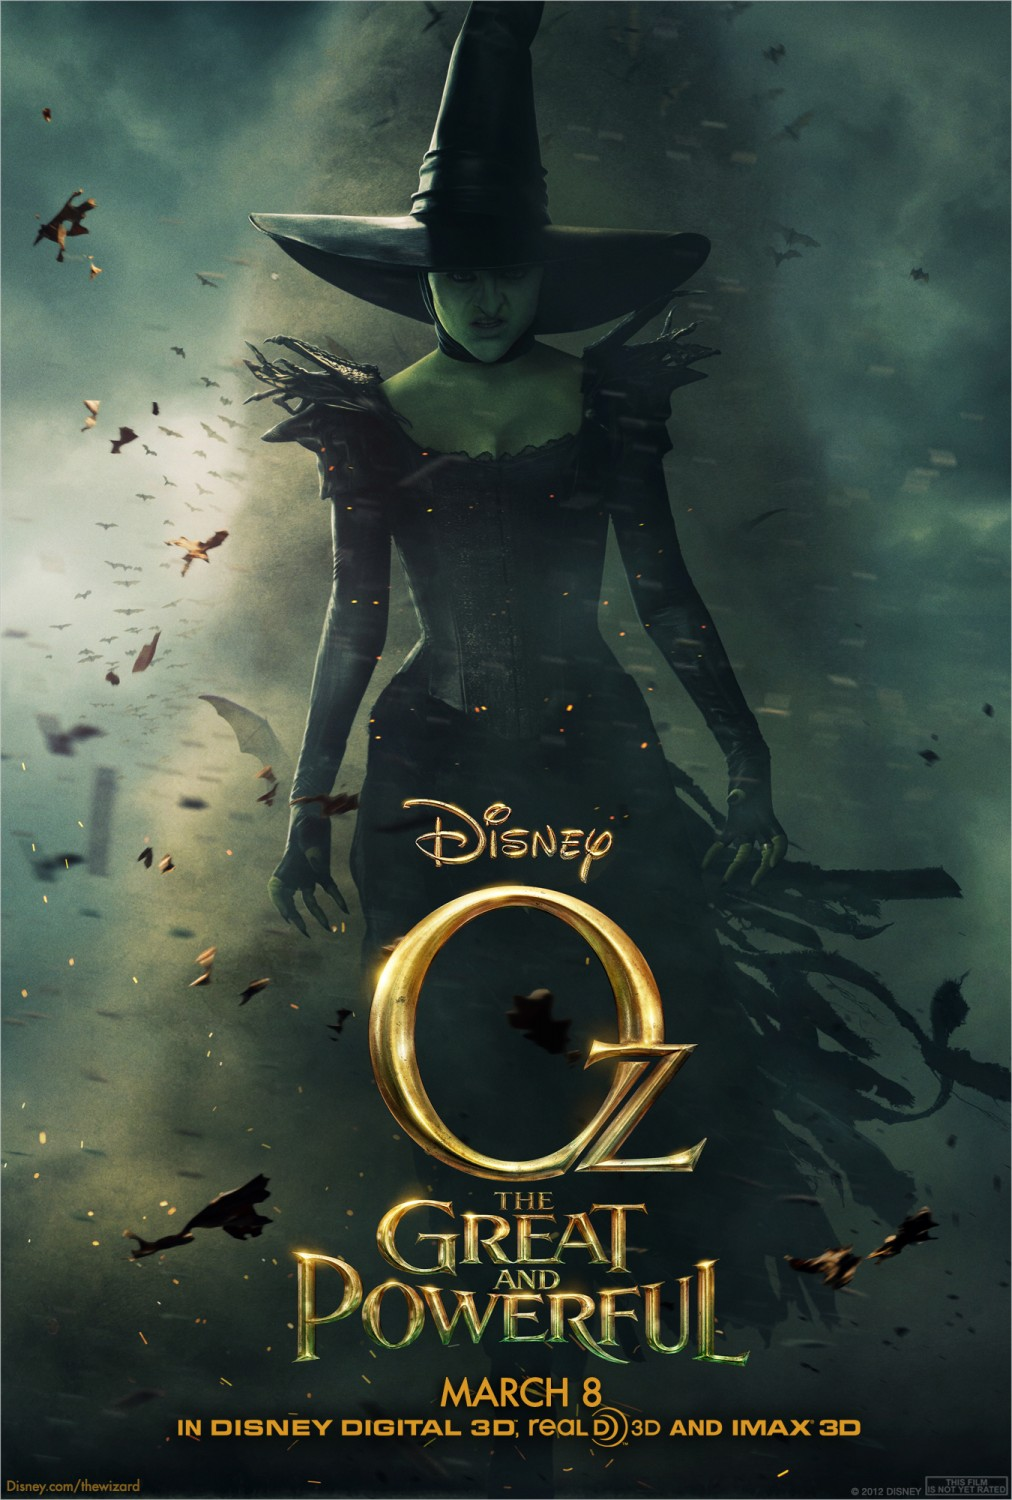 Oz The Great and Powerful character poster 1 - blackfilm ...Oz The Great And Powerful Cast